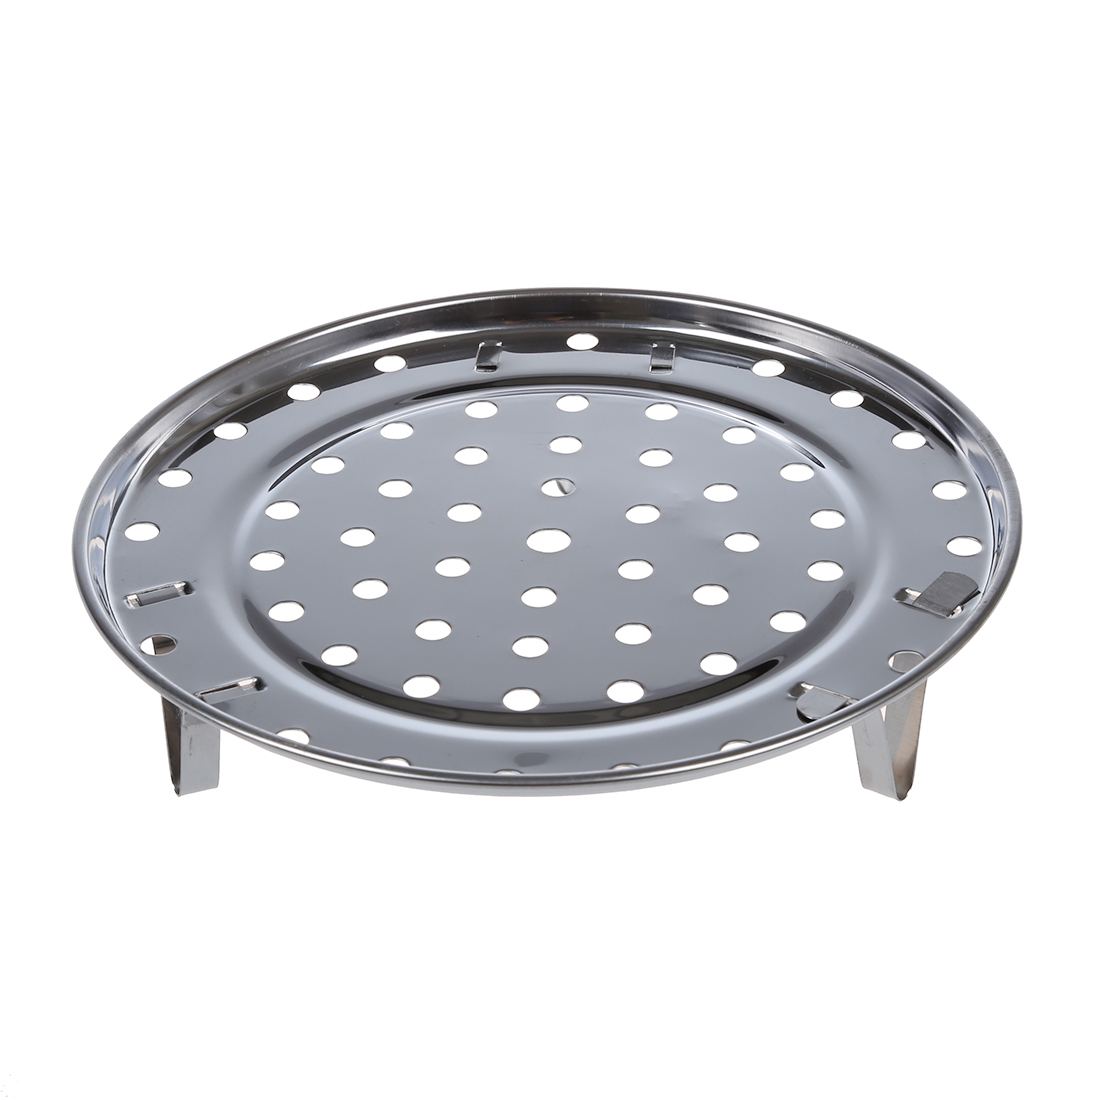 Promotion! Silver Tone Stainless Steaming Rack Tray W Stand For Cooker